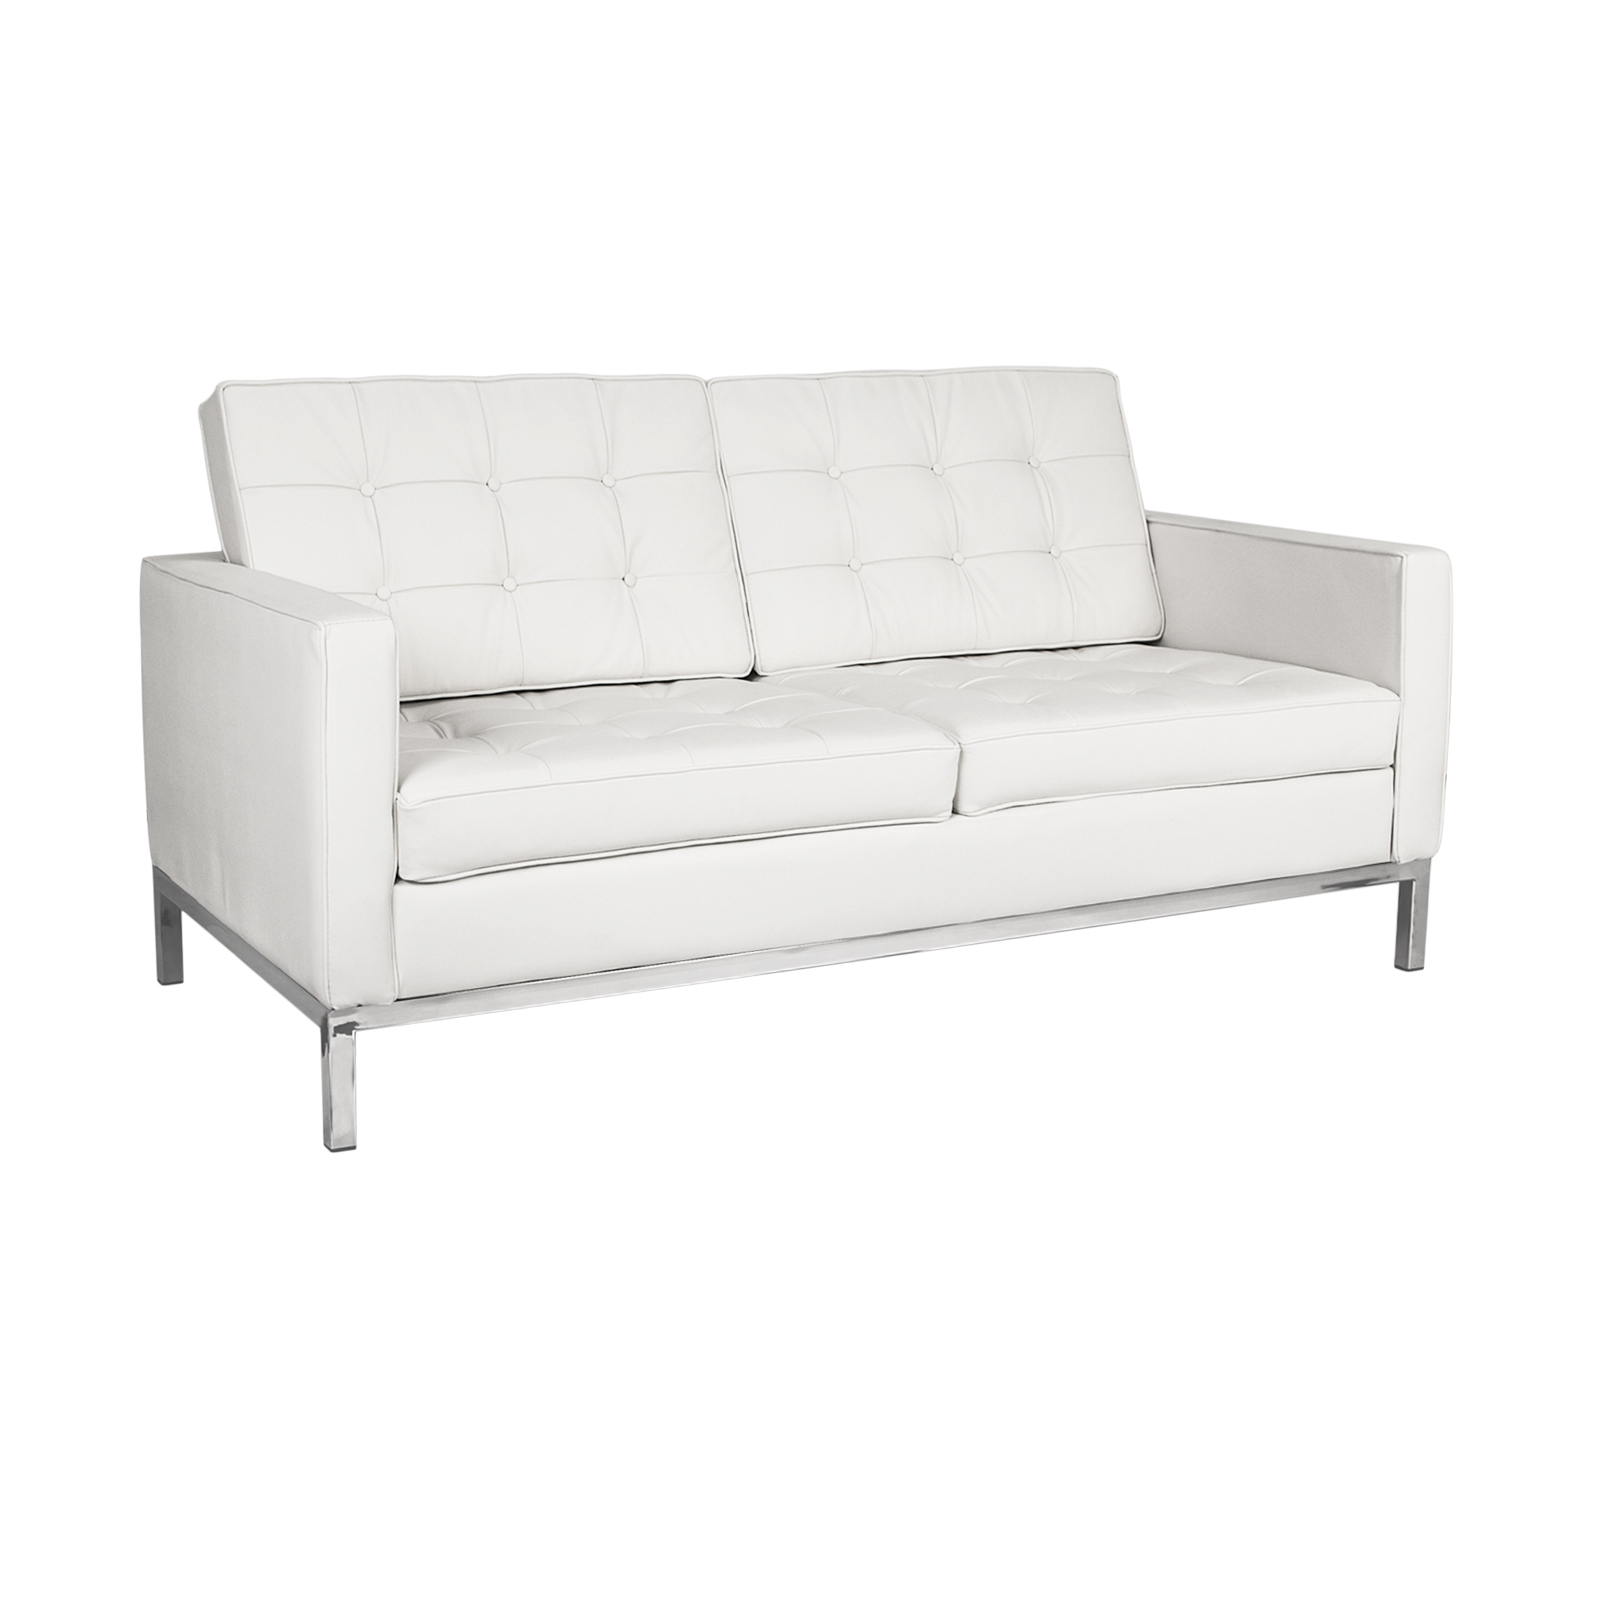 Florence Knoll Loveseat Rentals   Event Furniture Rental Within Florence Sofas And Loveseats (View 7 of 15)